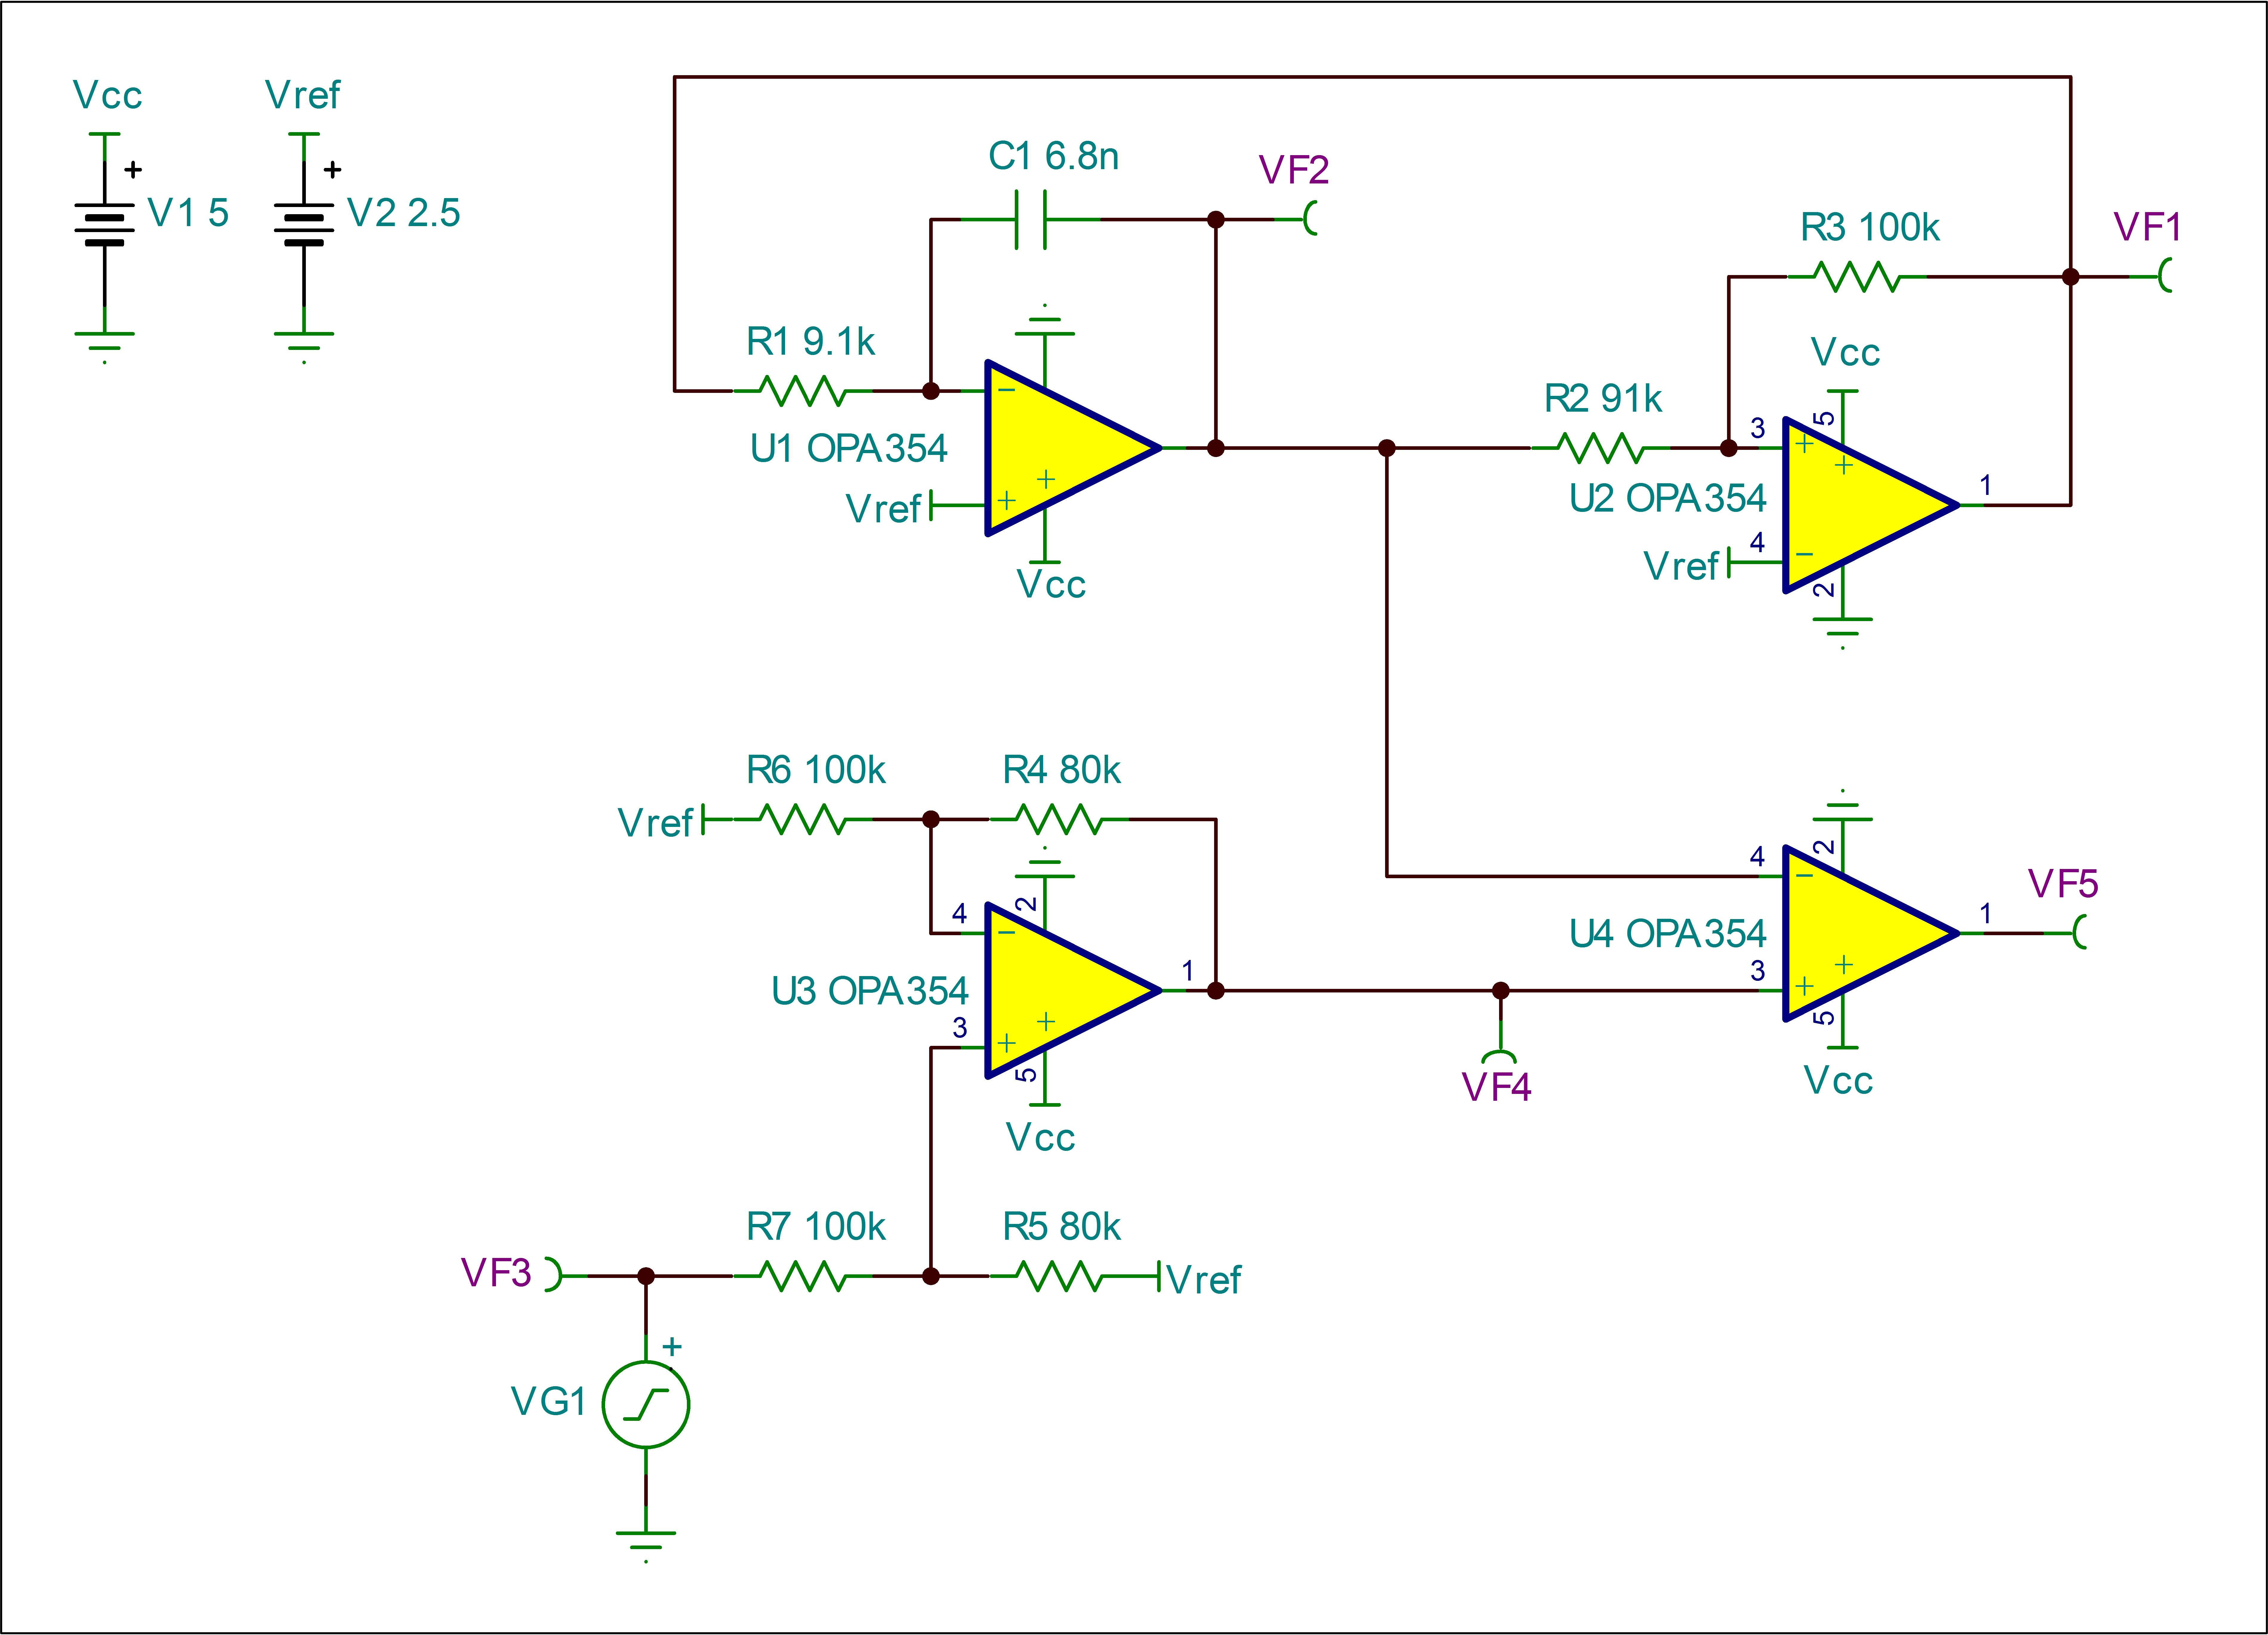 Op Amp As Comparator Circuit With This The Resolved Iso5500evm Interface Forum Ti E2e Community